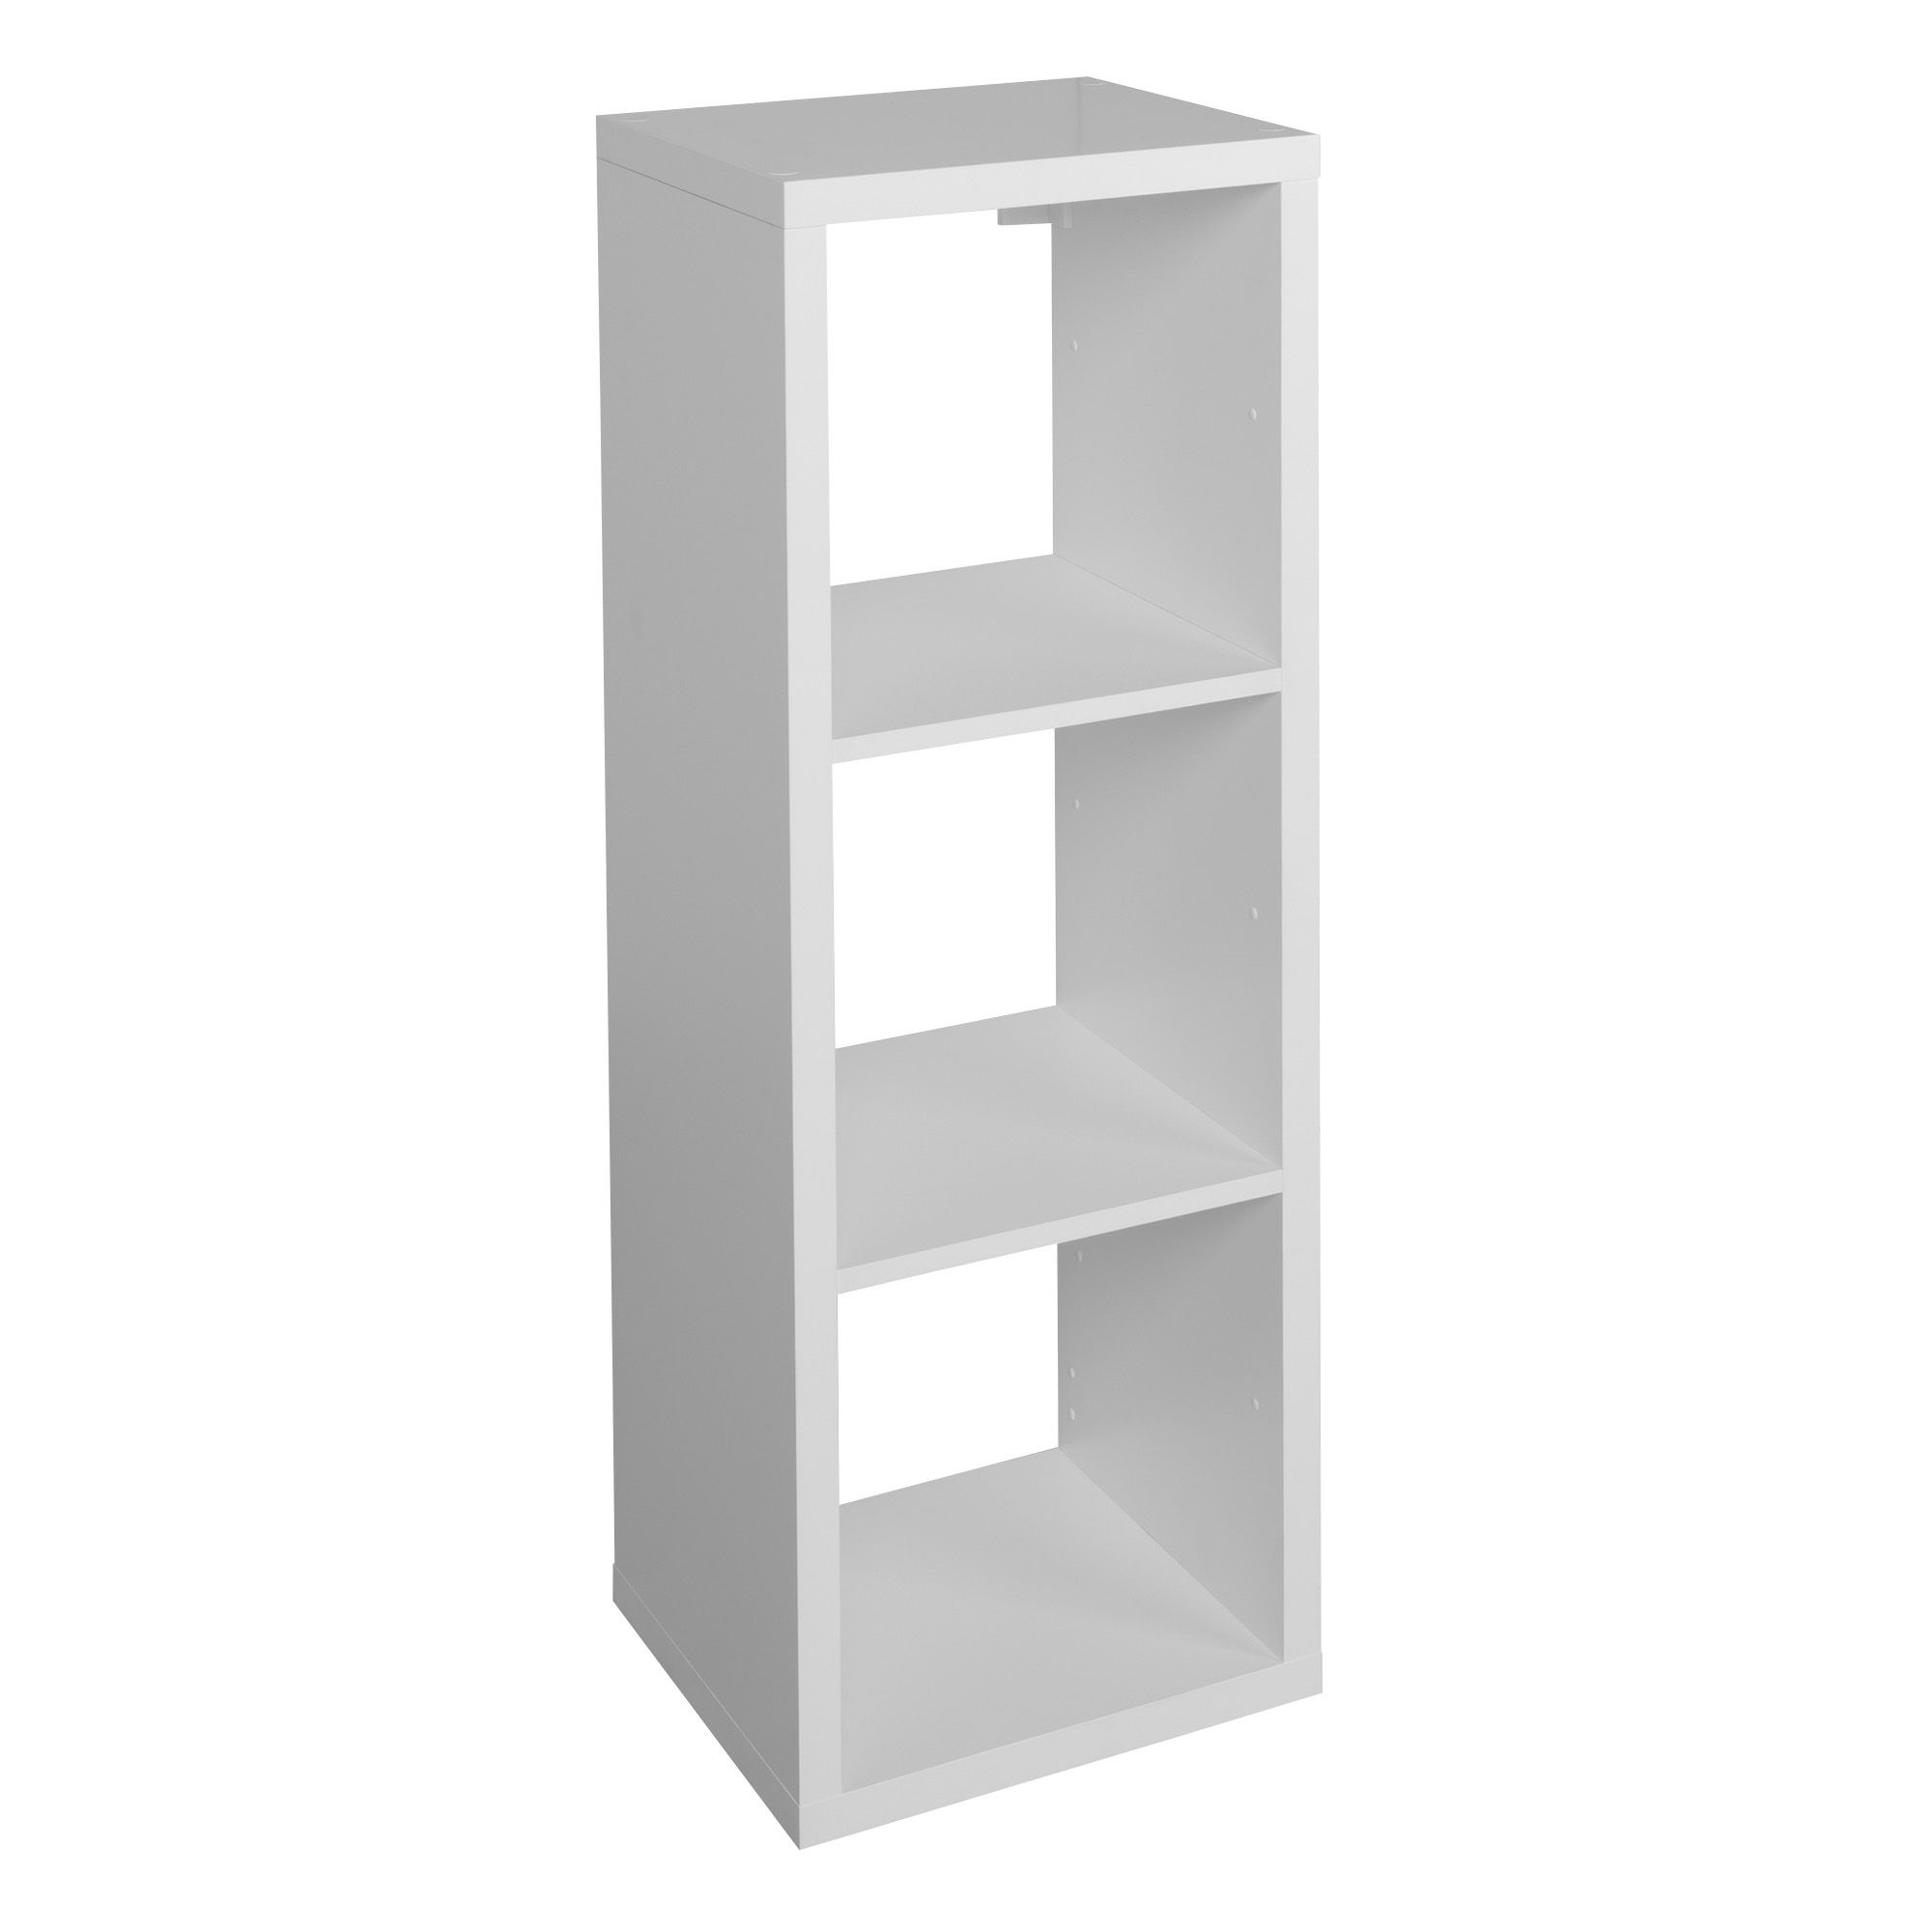 Bathroom Cabinets Uk Bq Form Mixxit White 3 Cube Shelving Unit H1082mm W390mm